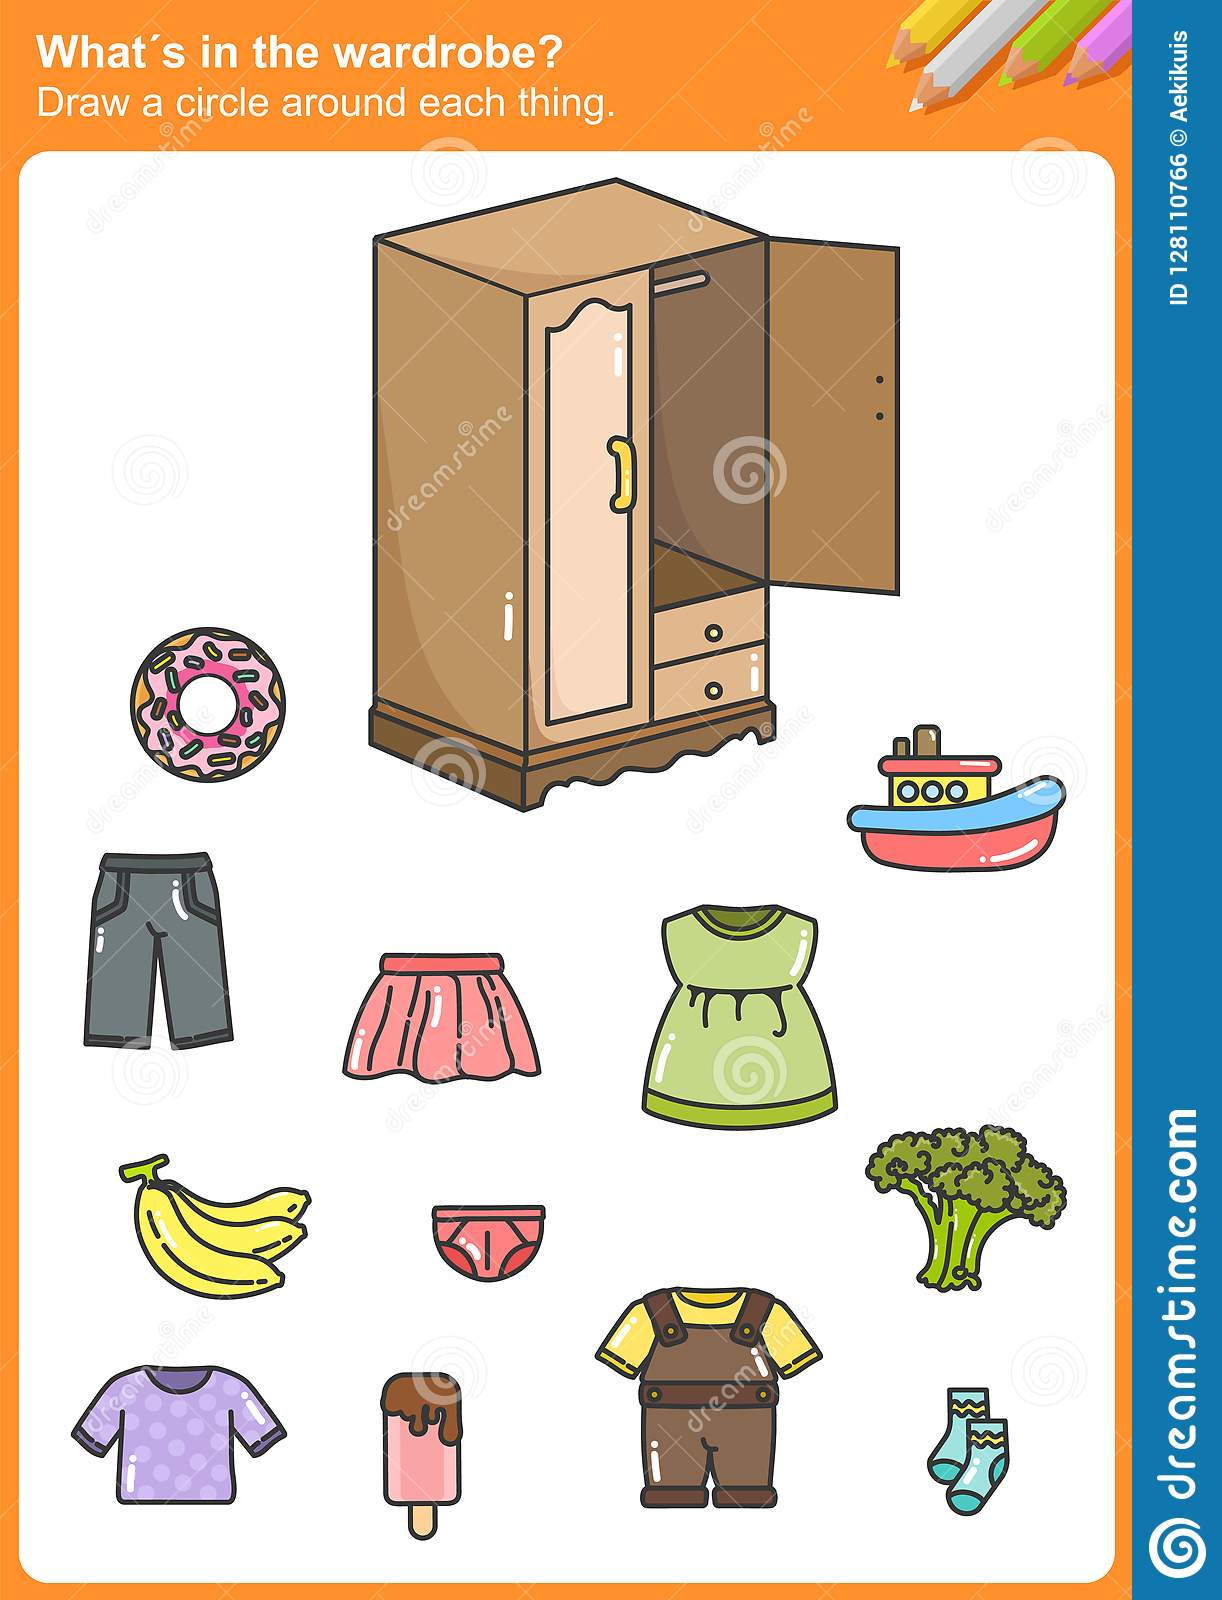 Whata S In The Wardrobe Draw A Circle Around Each Thing